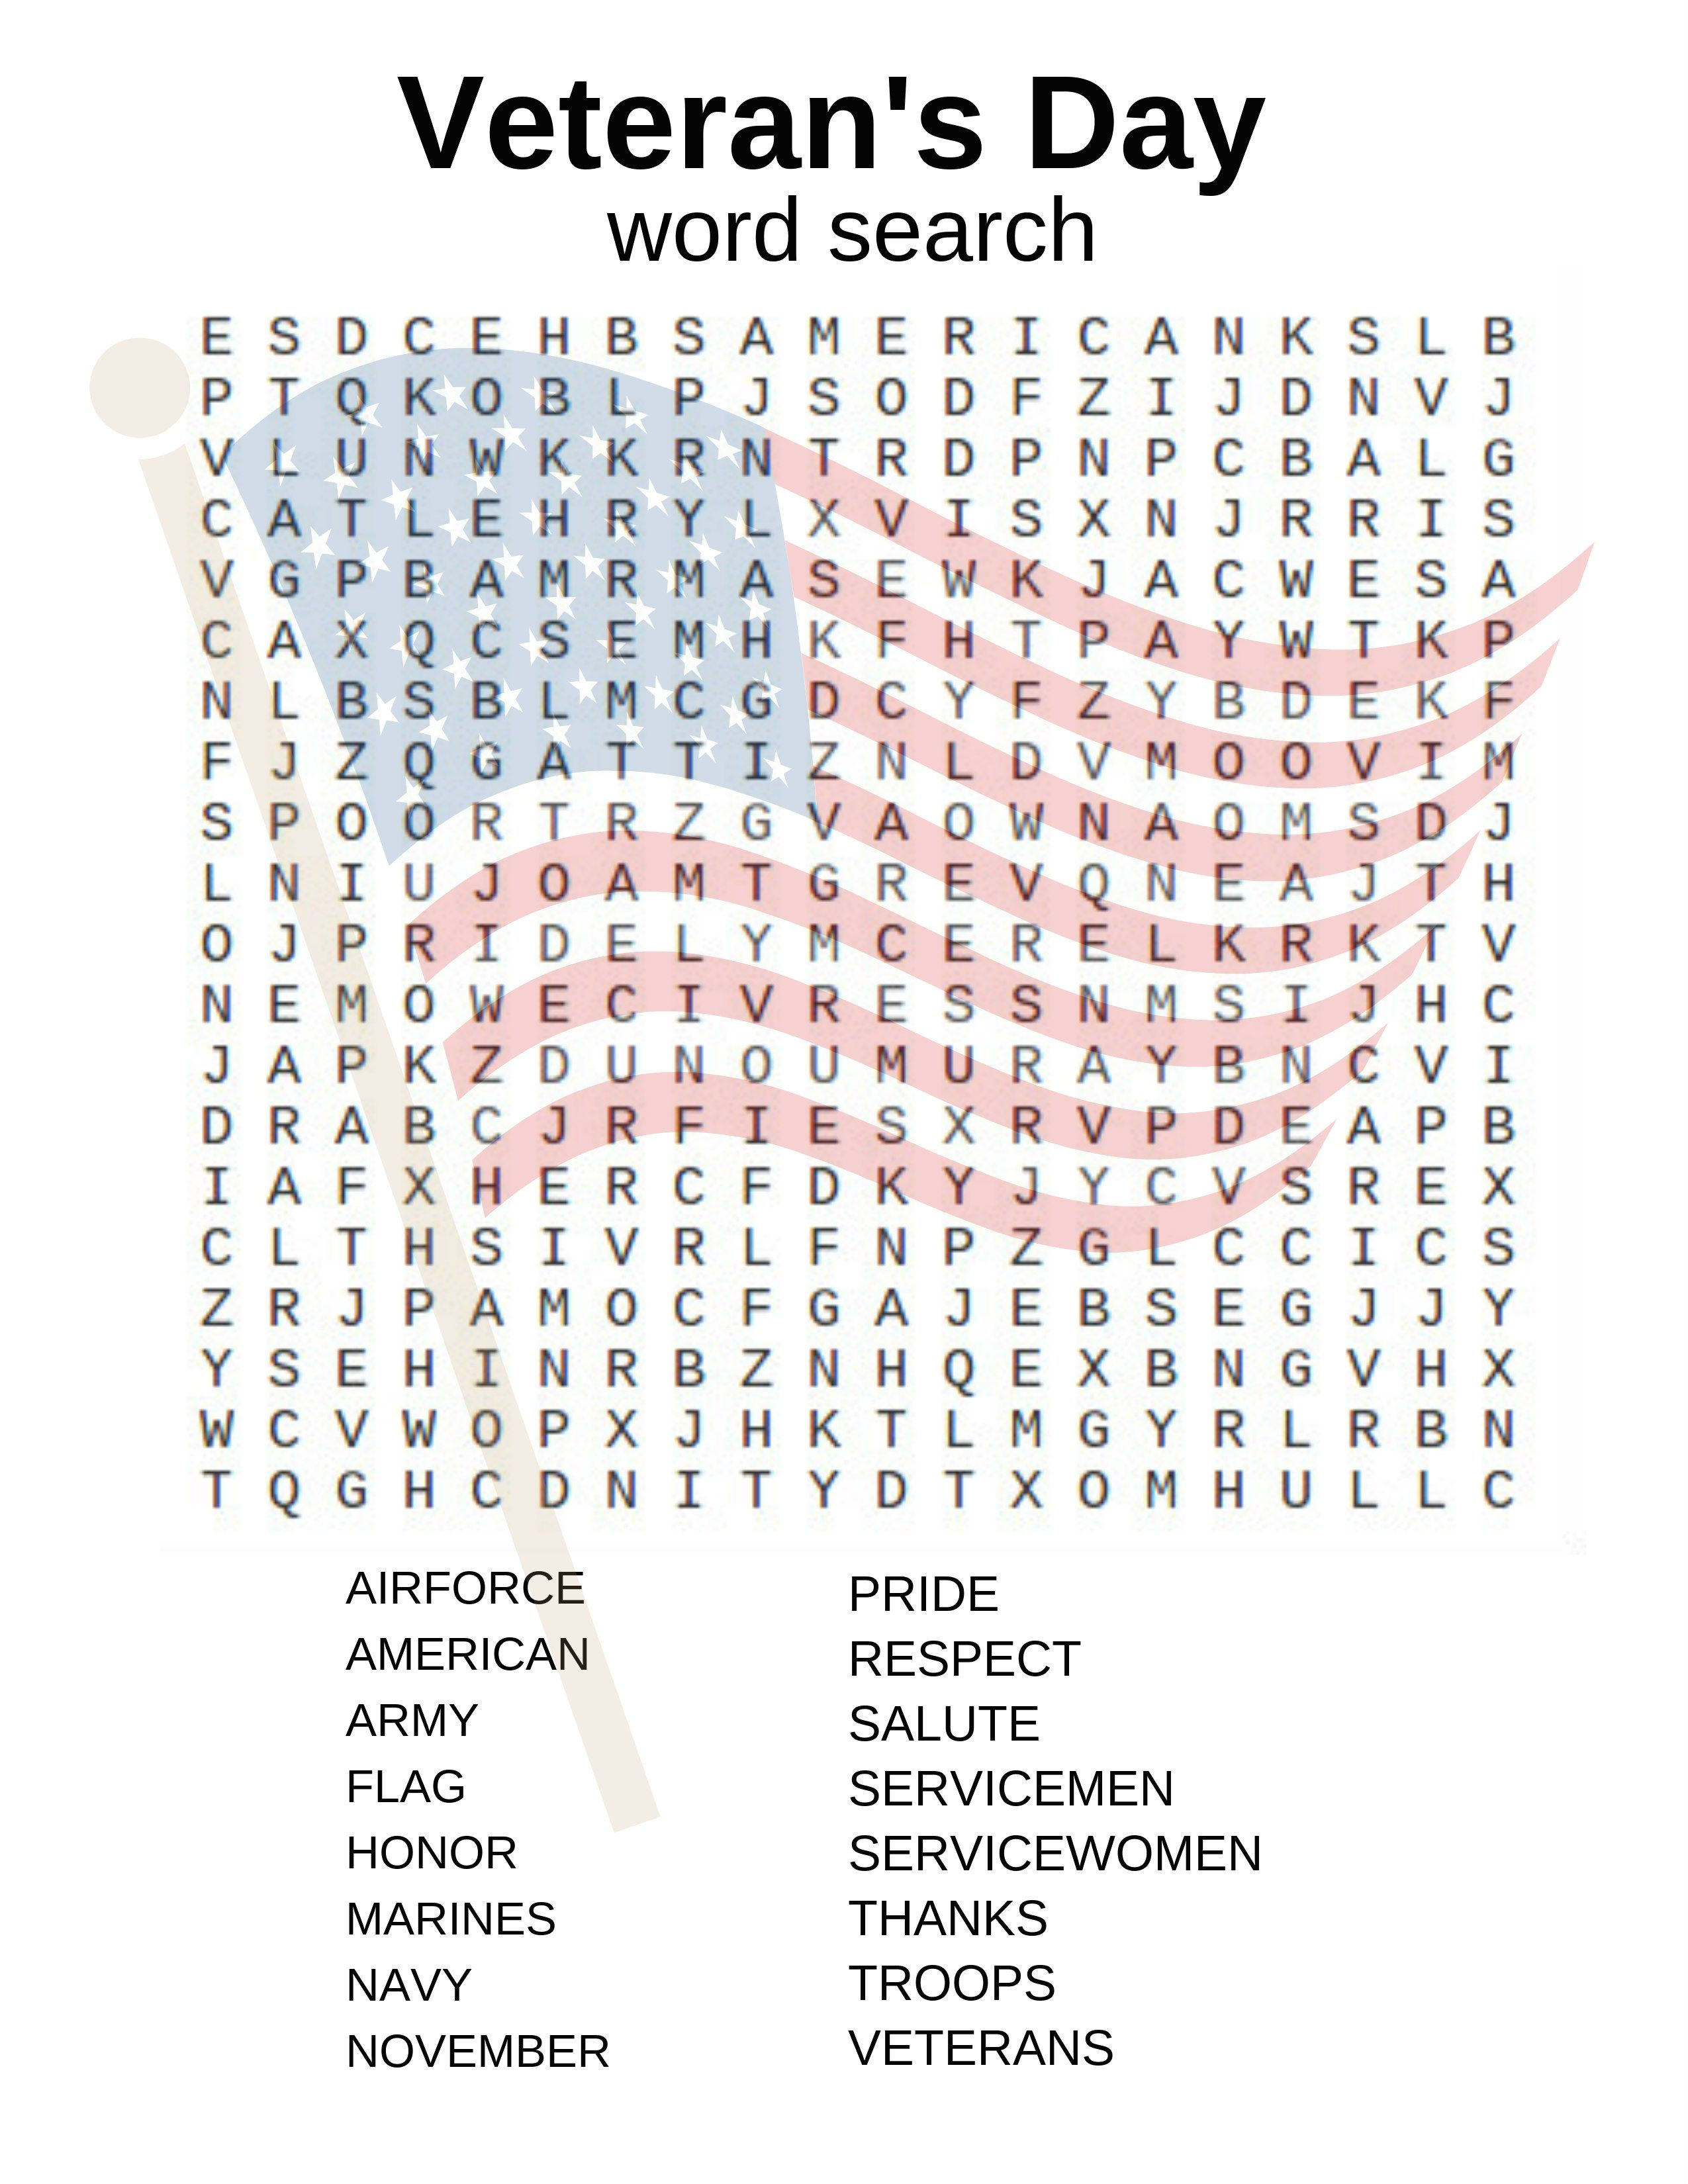 Veteran's Day Word Search And Other Activities! | Crafts And Fun - Printable Military Crossword Puzzles